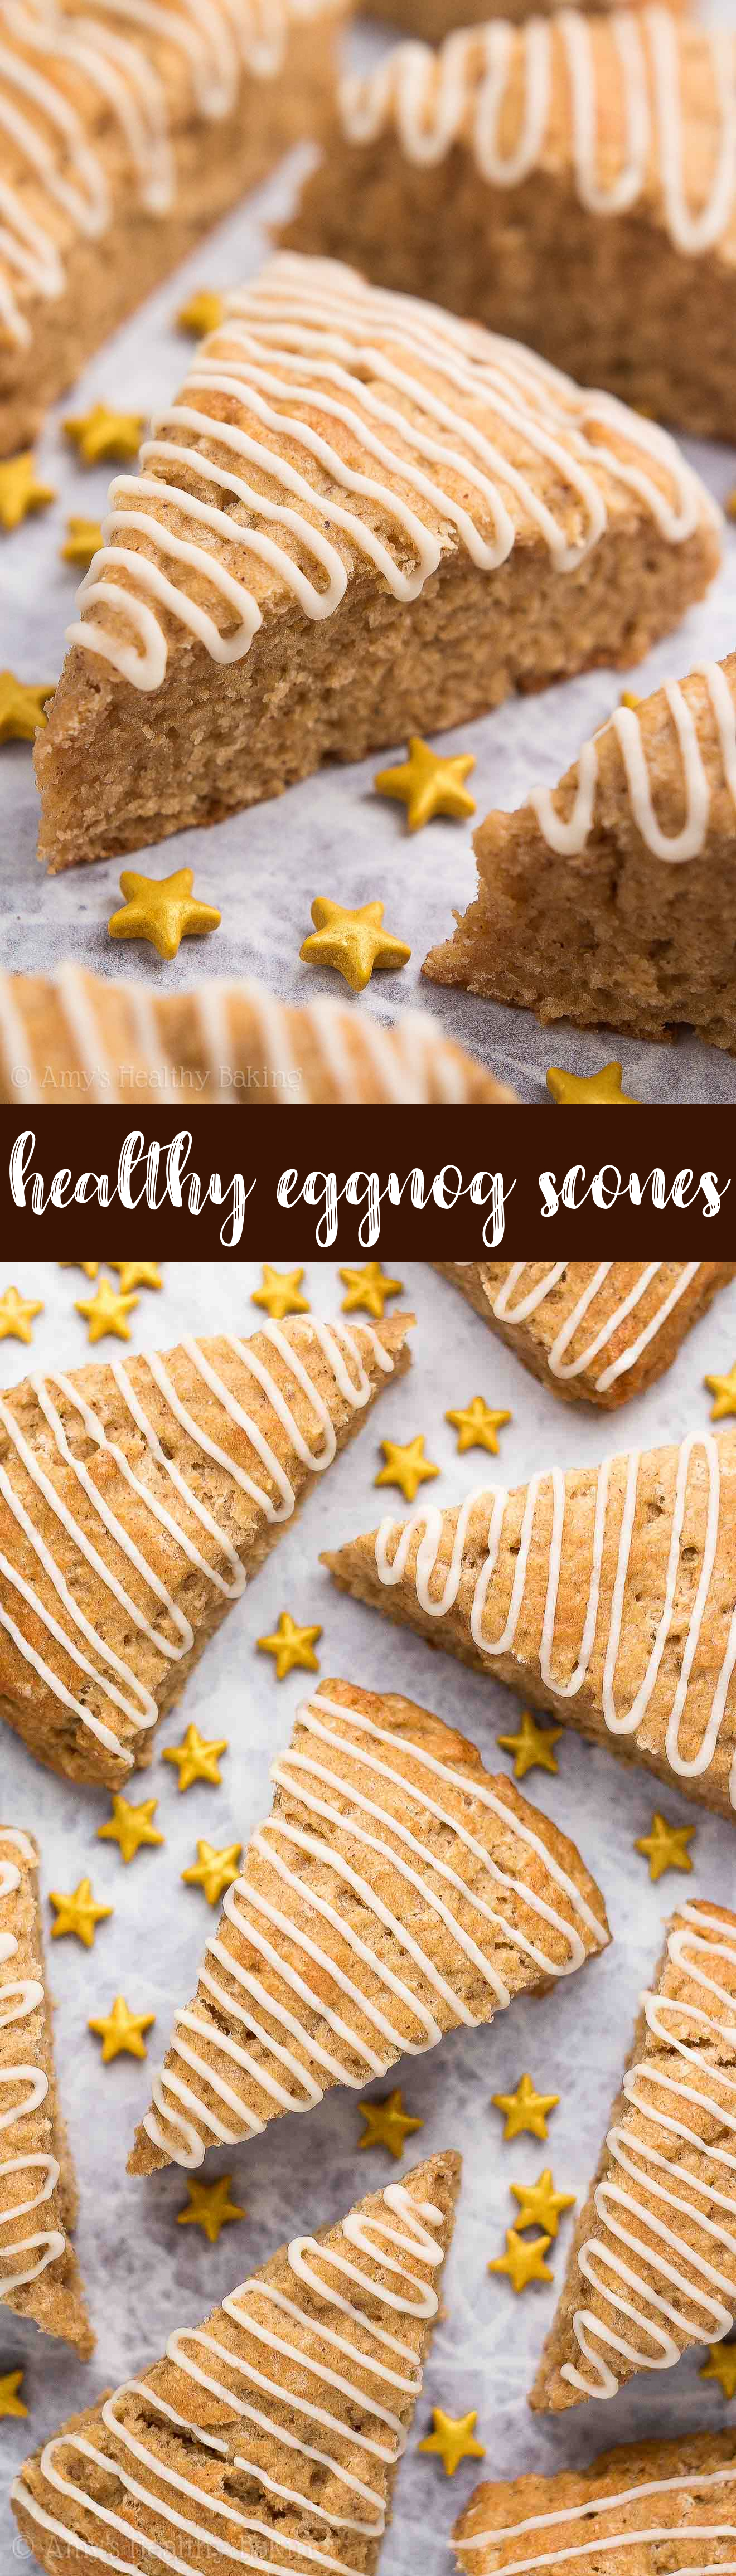 {HEALTHY!} Eggnog Scones -- only 126 calories! You just need 1 bowl & 30 minutes to make them! Perfectly tender & full of sweet, cozy eggnog flavor! I make this easy recipe ALL the time during the holidays -- it's AMAZING! #recipe #healthy #holidays #christmas #eggnog #scones #breakfast